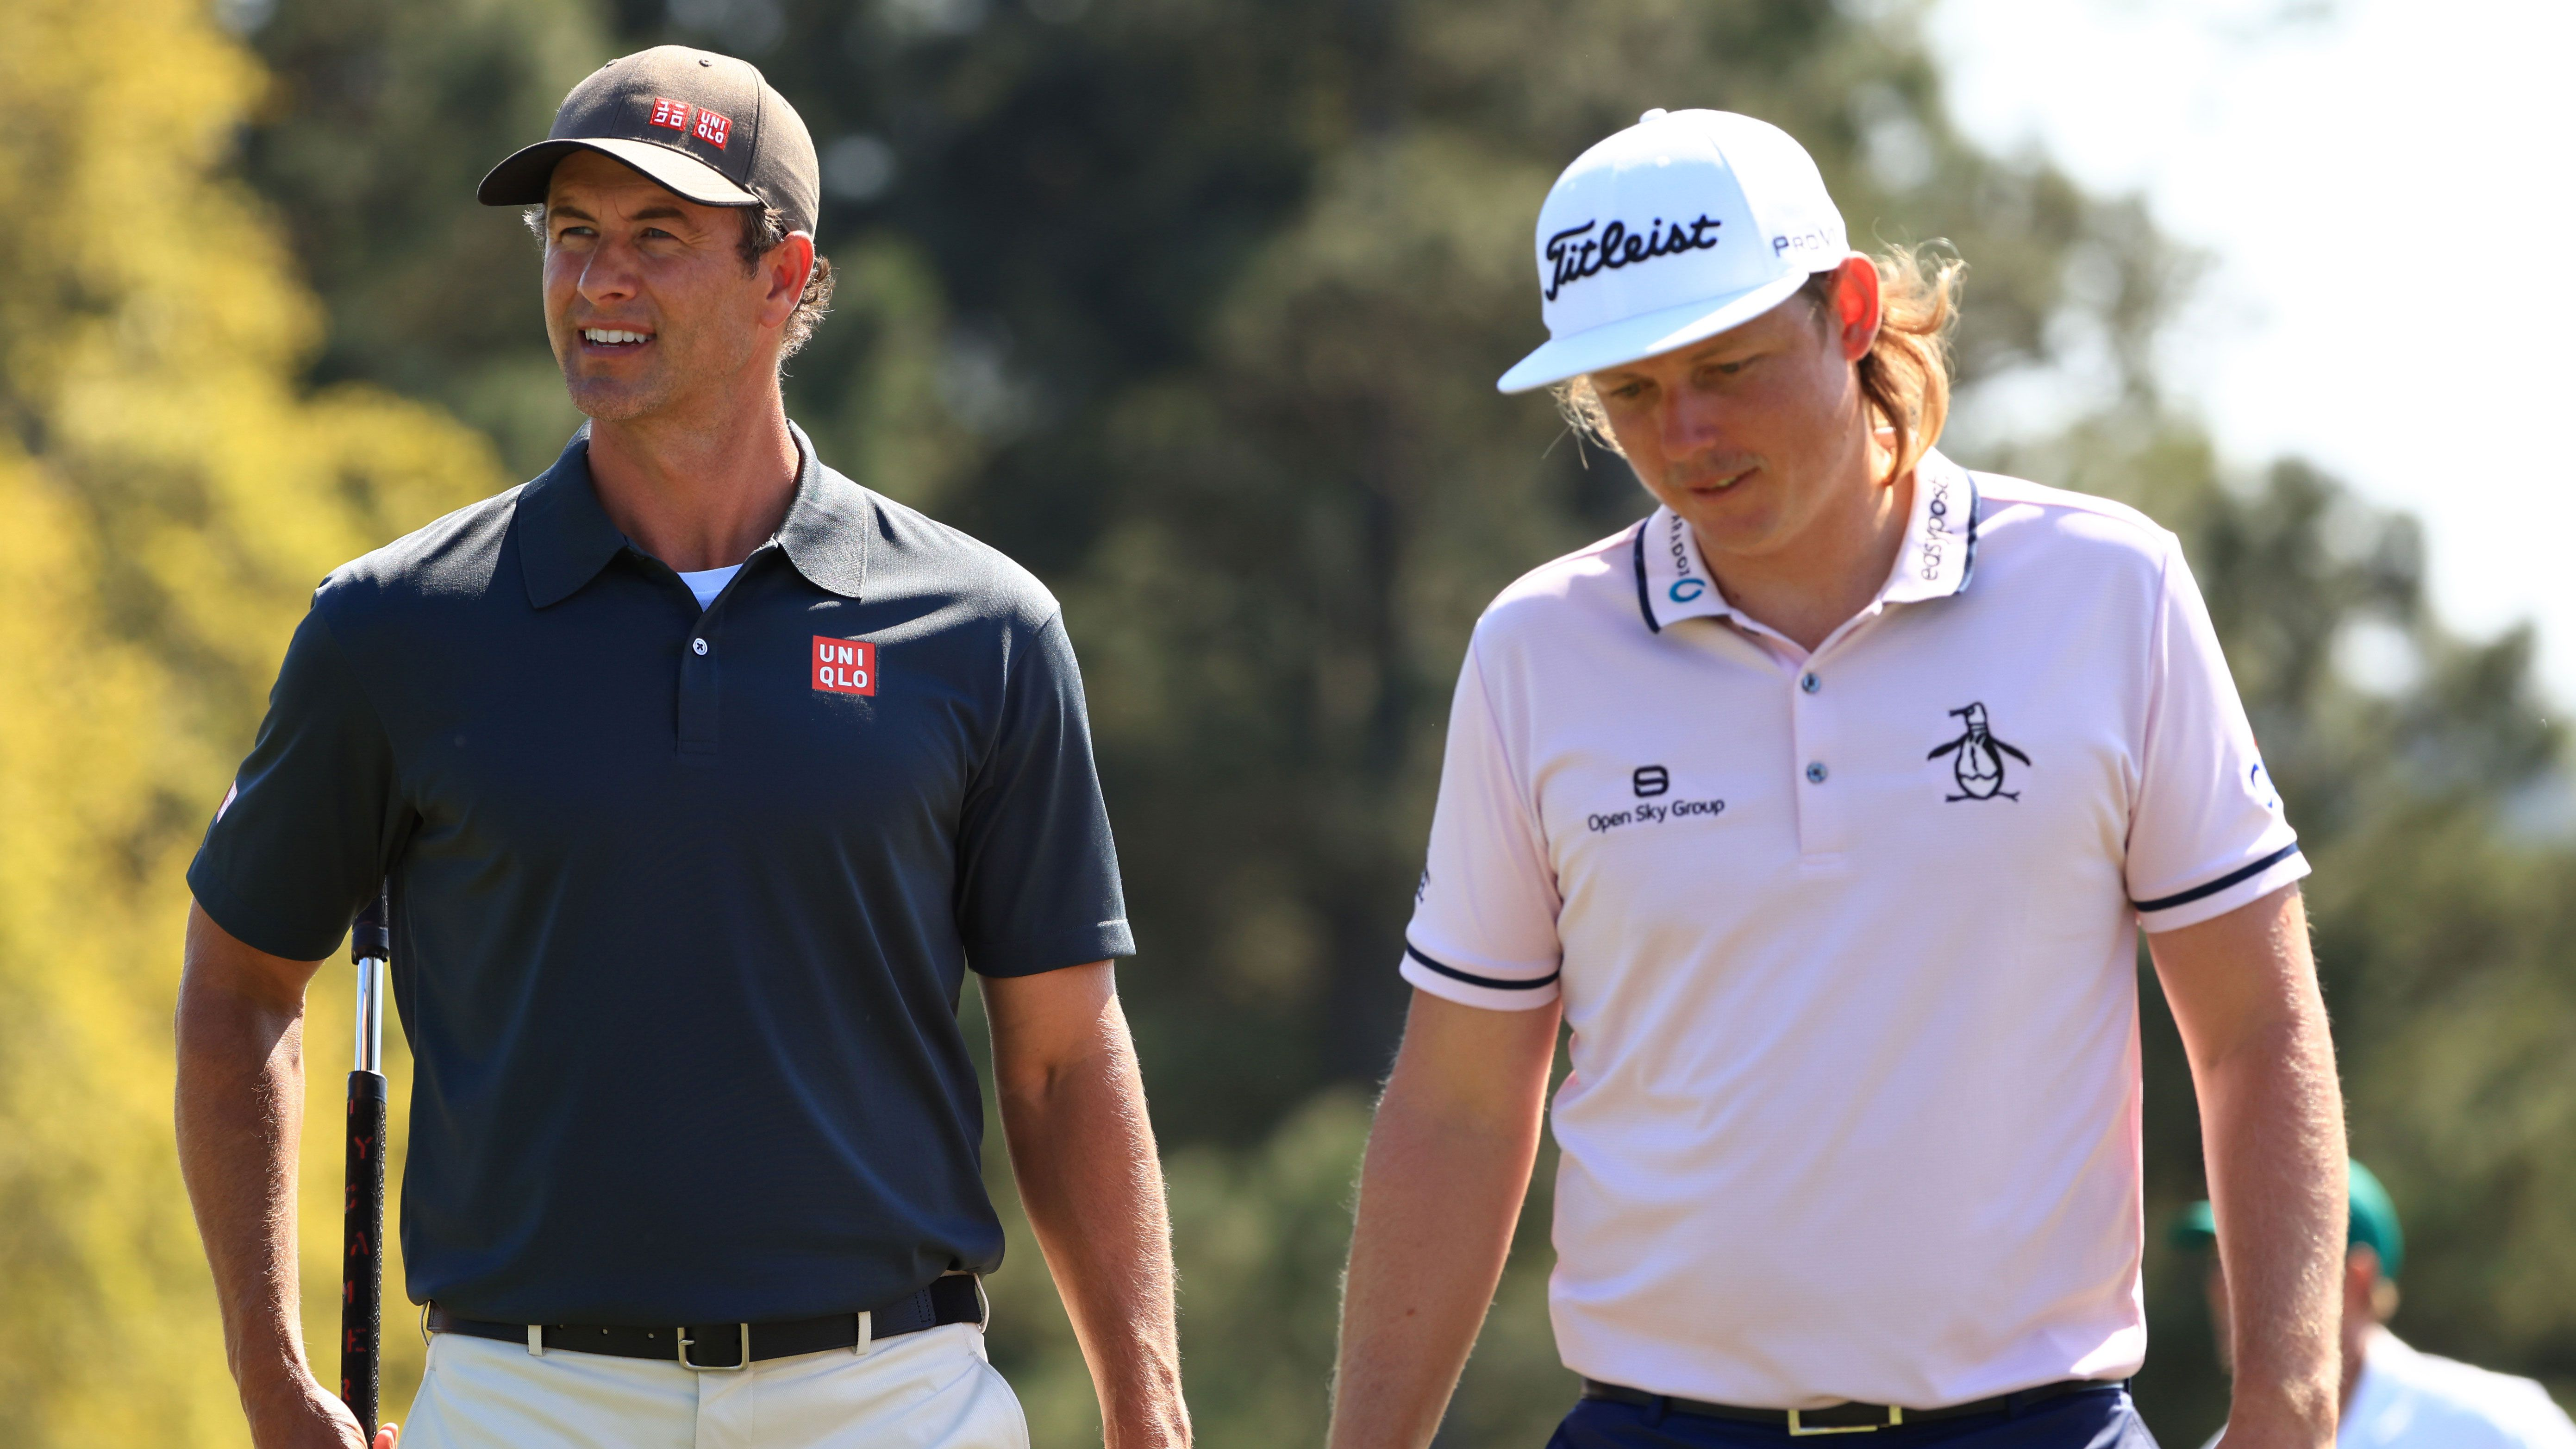 The Masters Ultimate Guide: Full AEST tee times, how to watch and everything you need to know